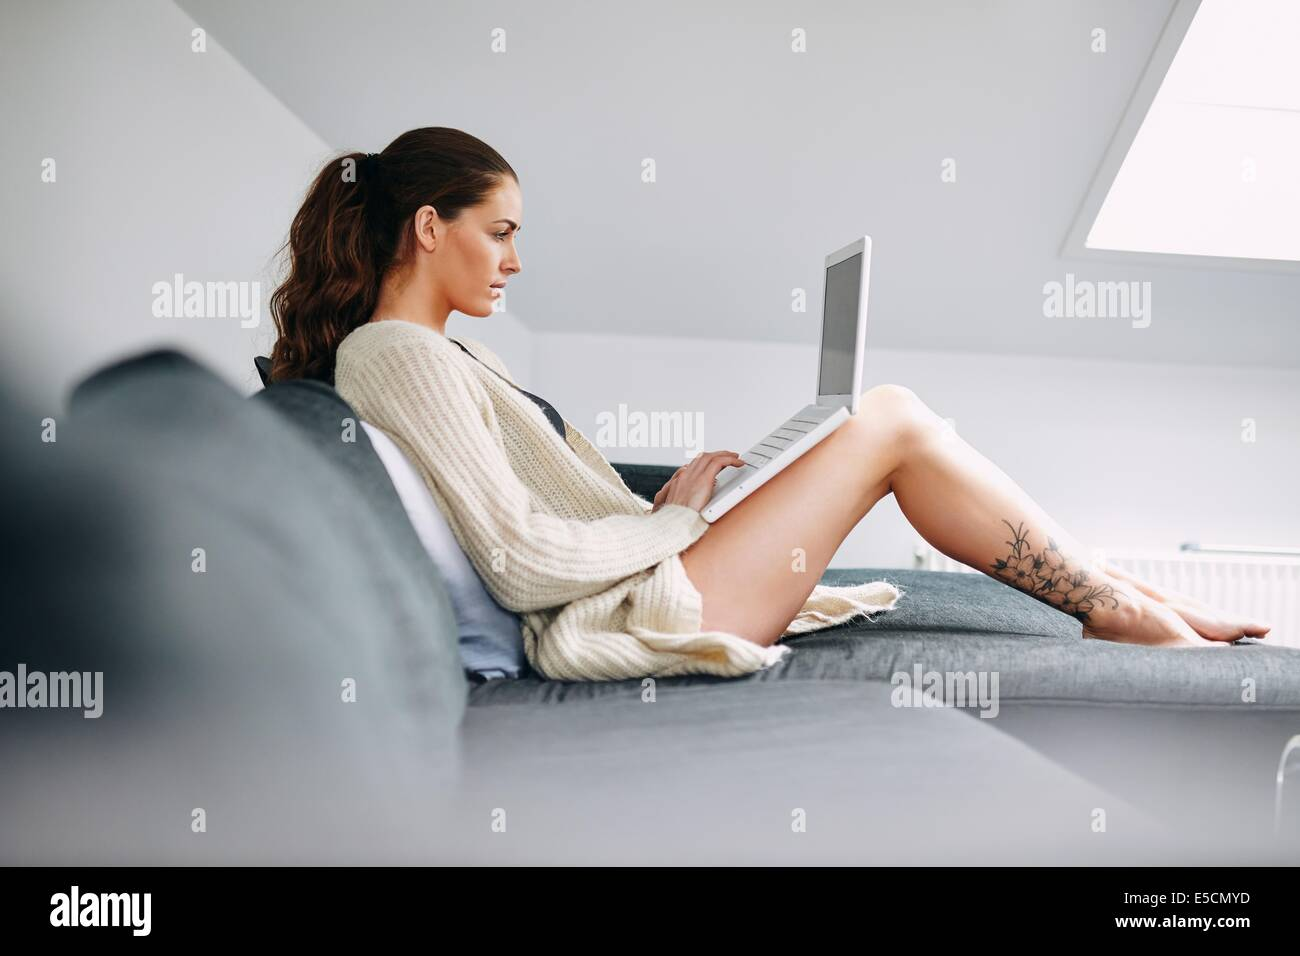 Side view of young lady sitting on sofa using laptop. Caucasian female model on couch surfing internet on laptop - Stock Image